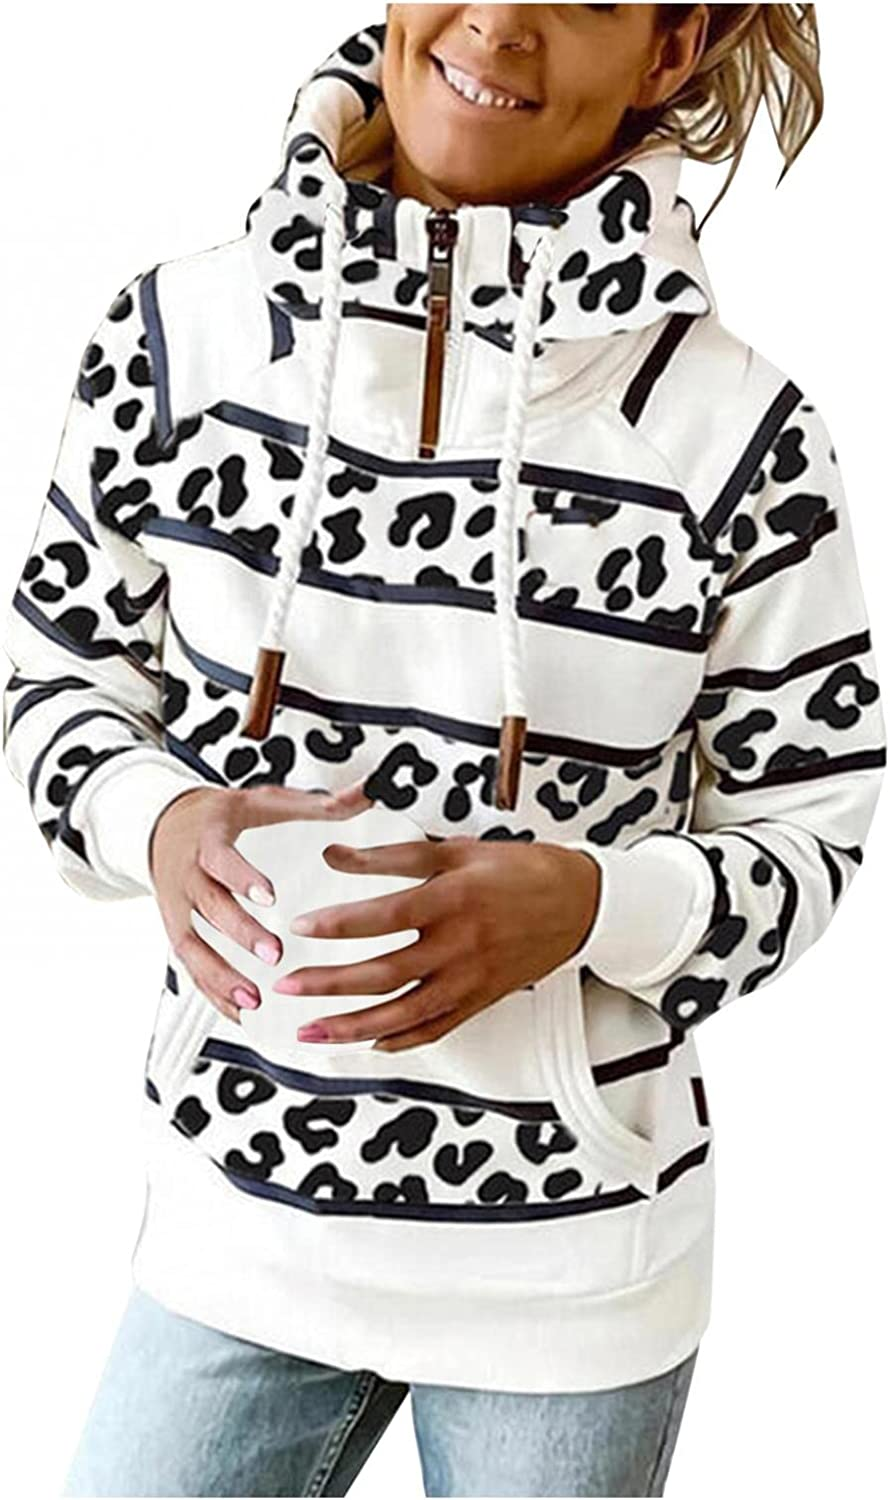 Gibobby Hoodies for Women Pullover Winter Striped Long Sleeve Women's Sweatshirts Printing Oversized Drawstring Pocket Hooded